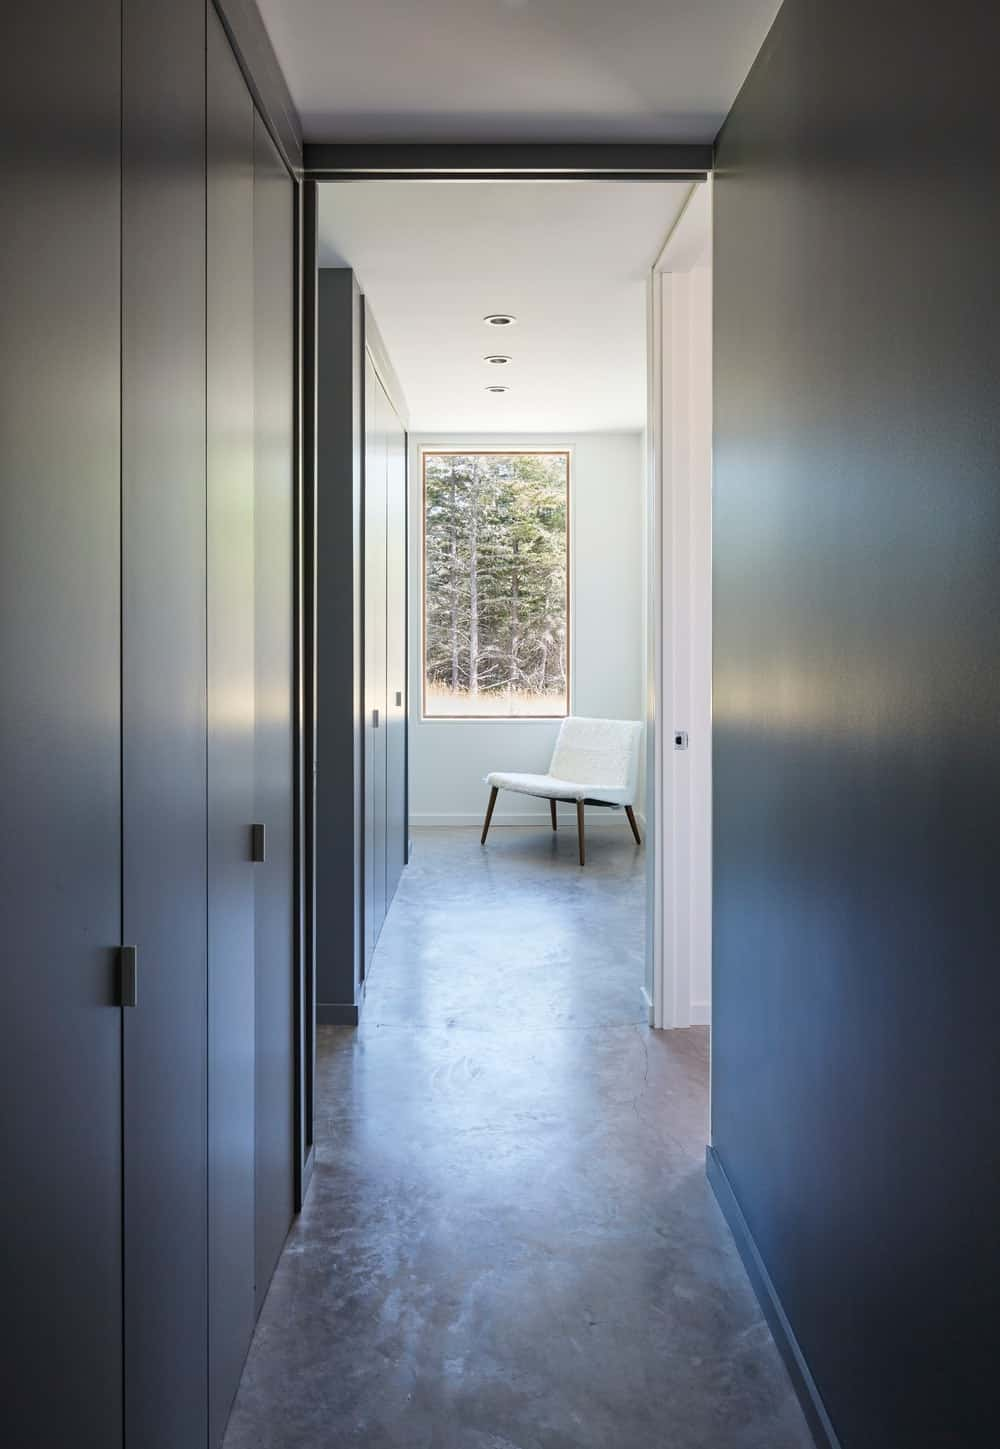 Hallway leading to different parts of the house featuring smooth flooring and recessed ceiling lights. Photo credit: Janet Kimber